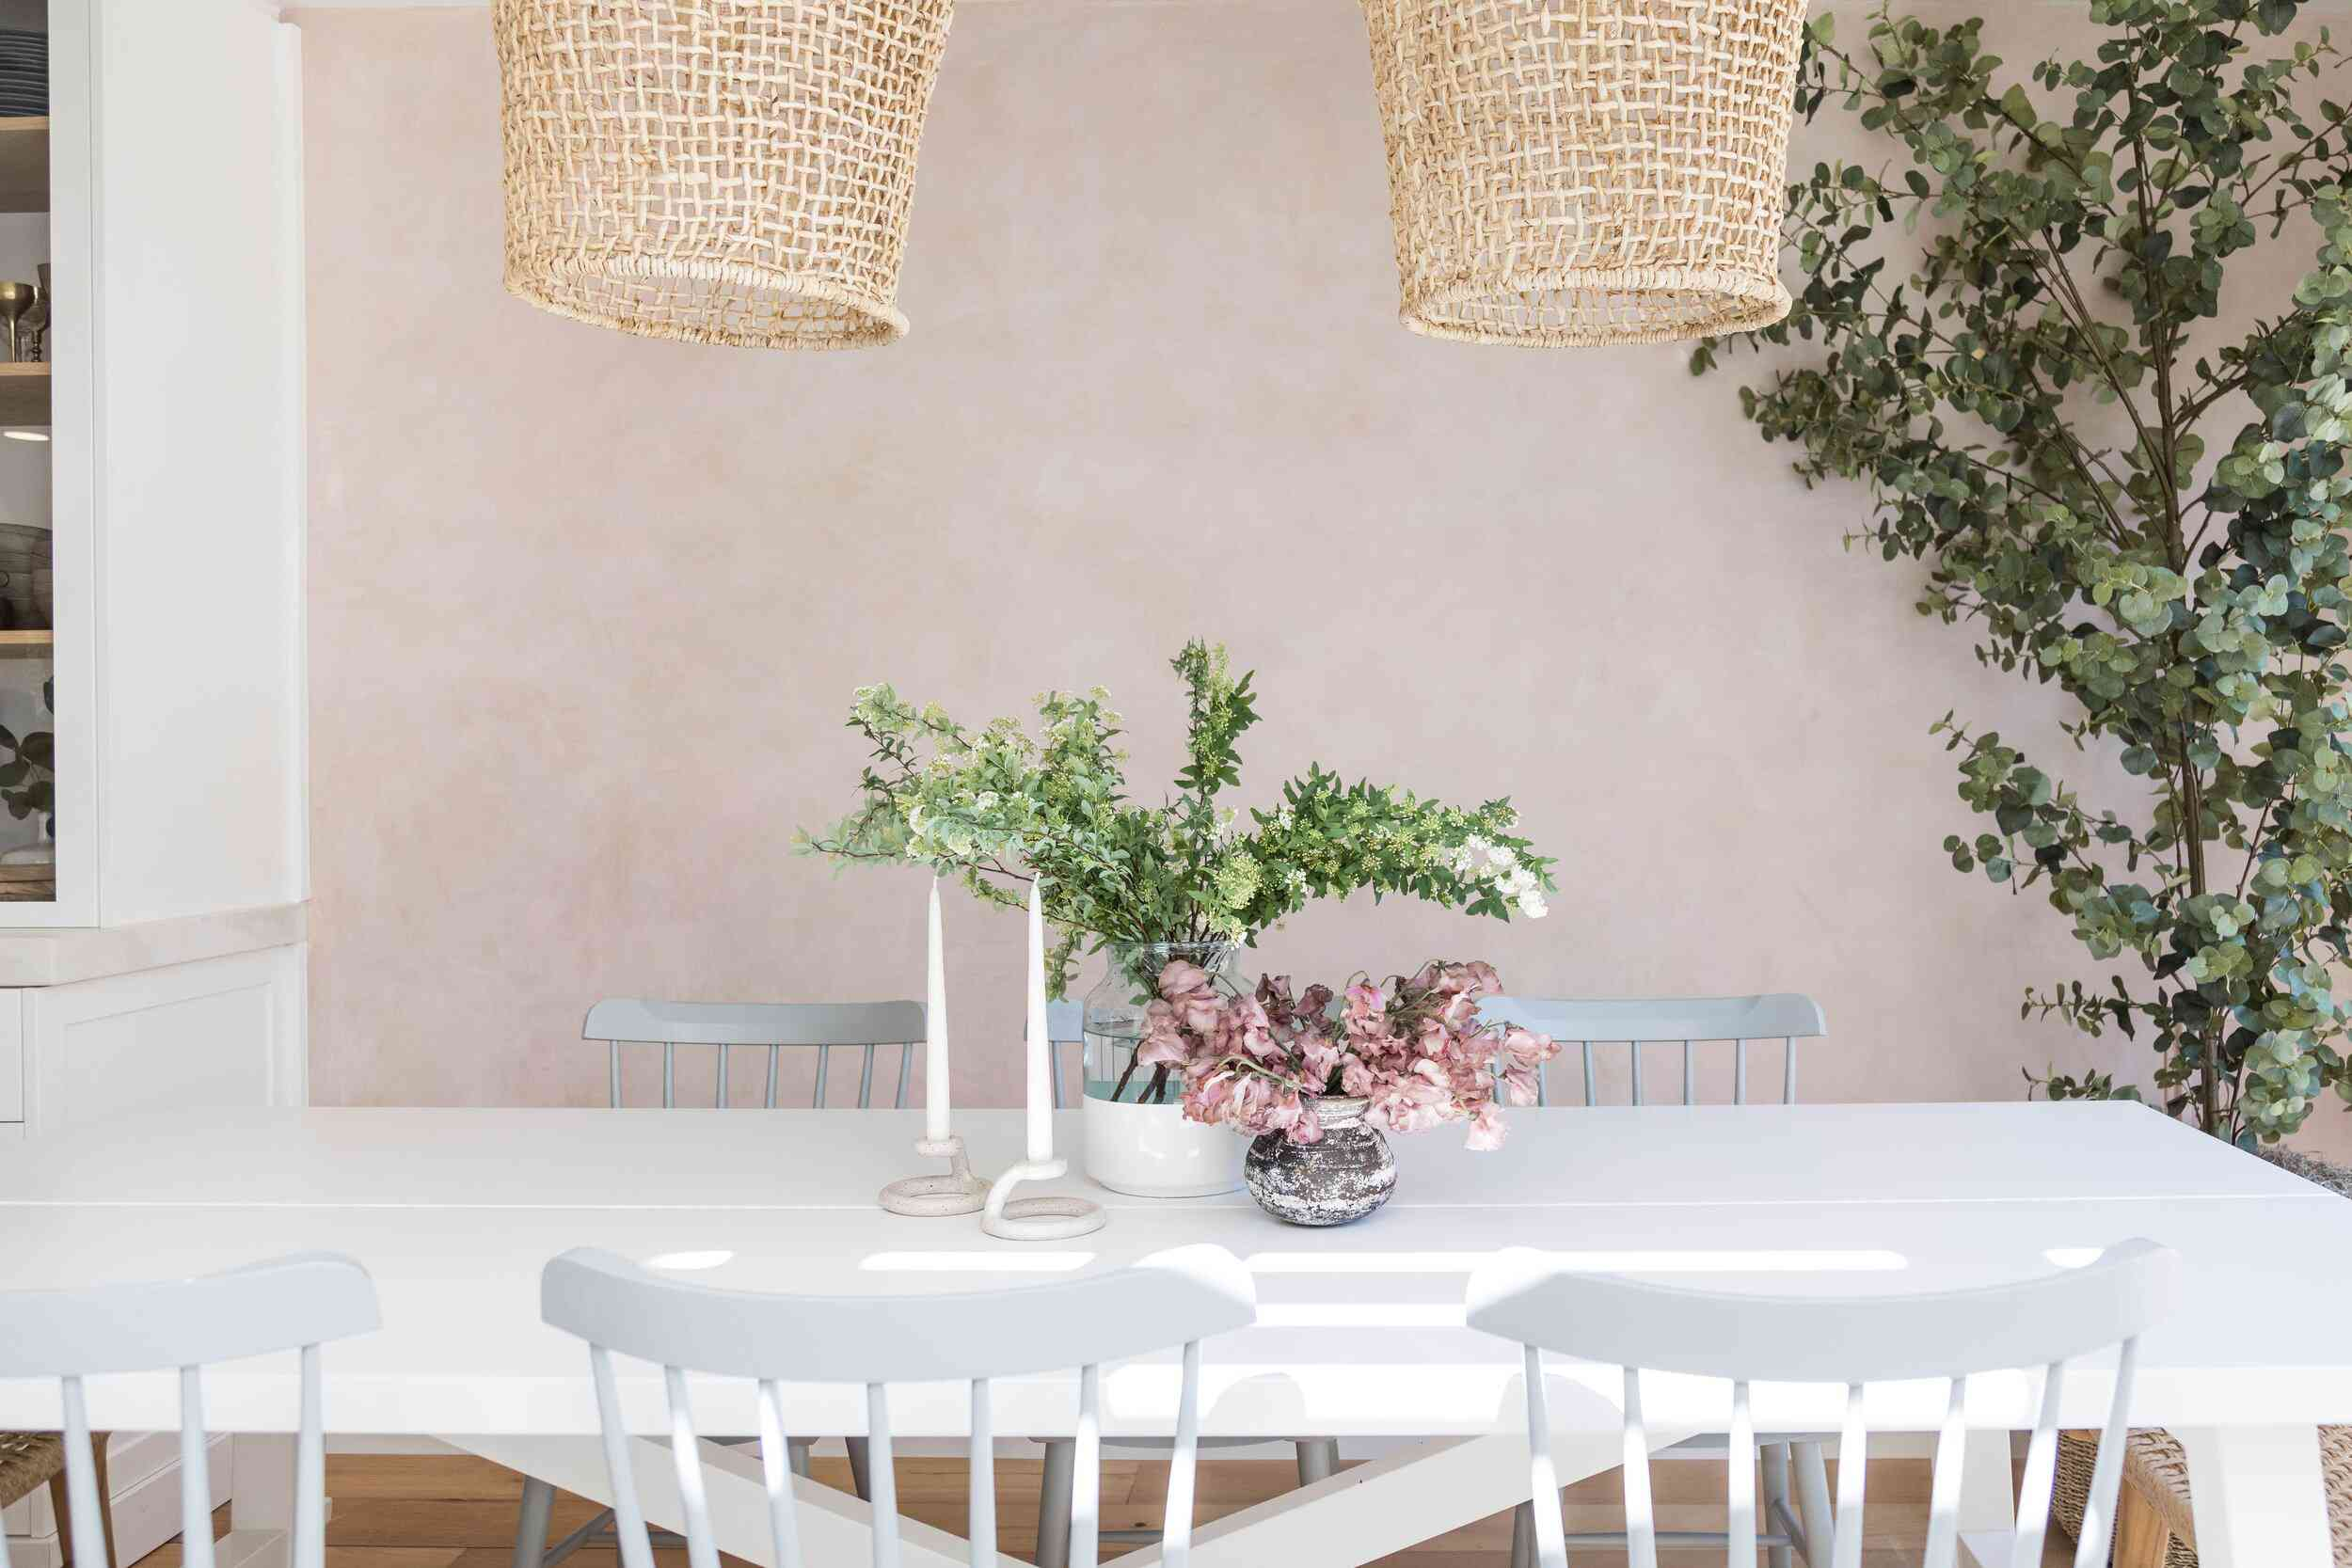 51 Simple Table Decoration Ideas You, White Centerpieces For Dining Room Table